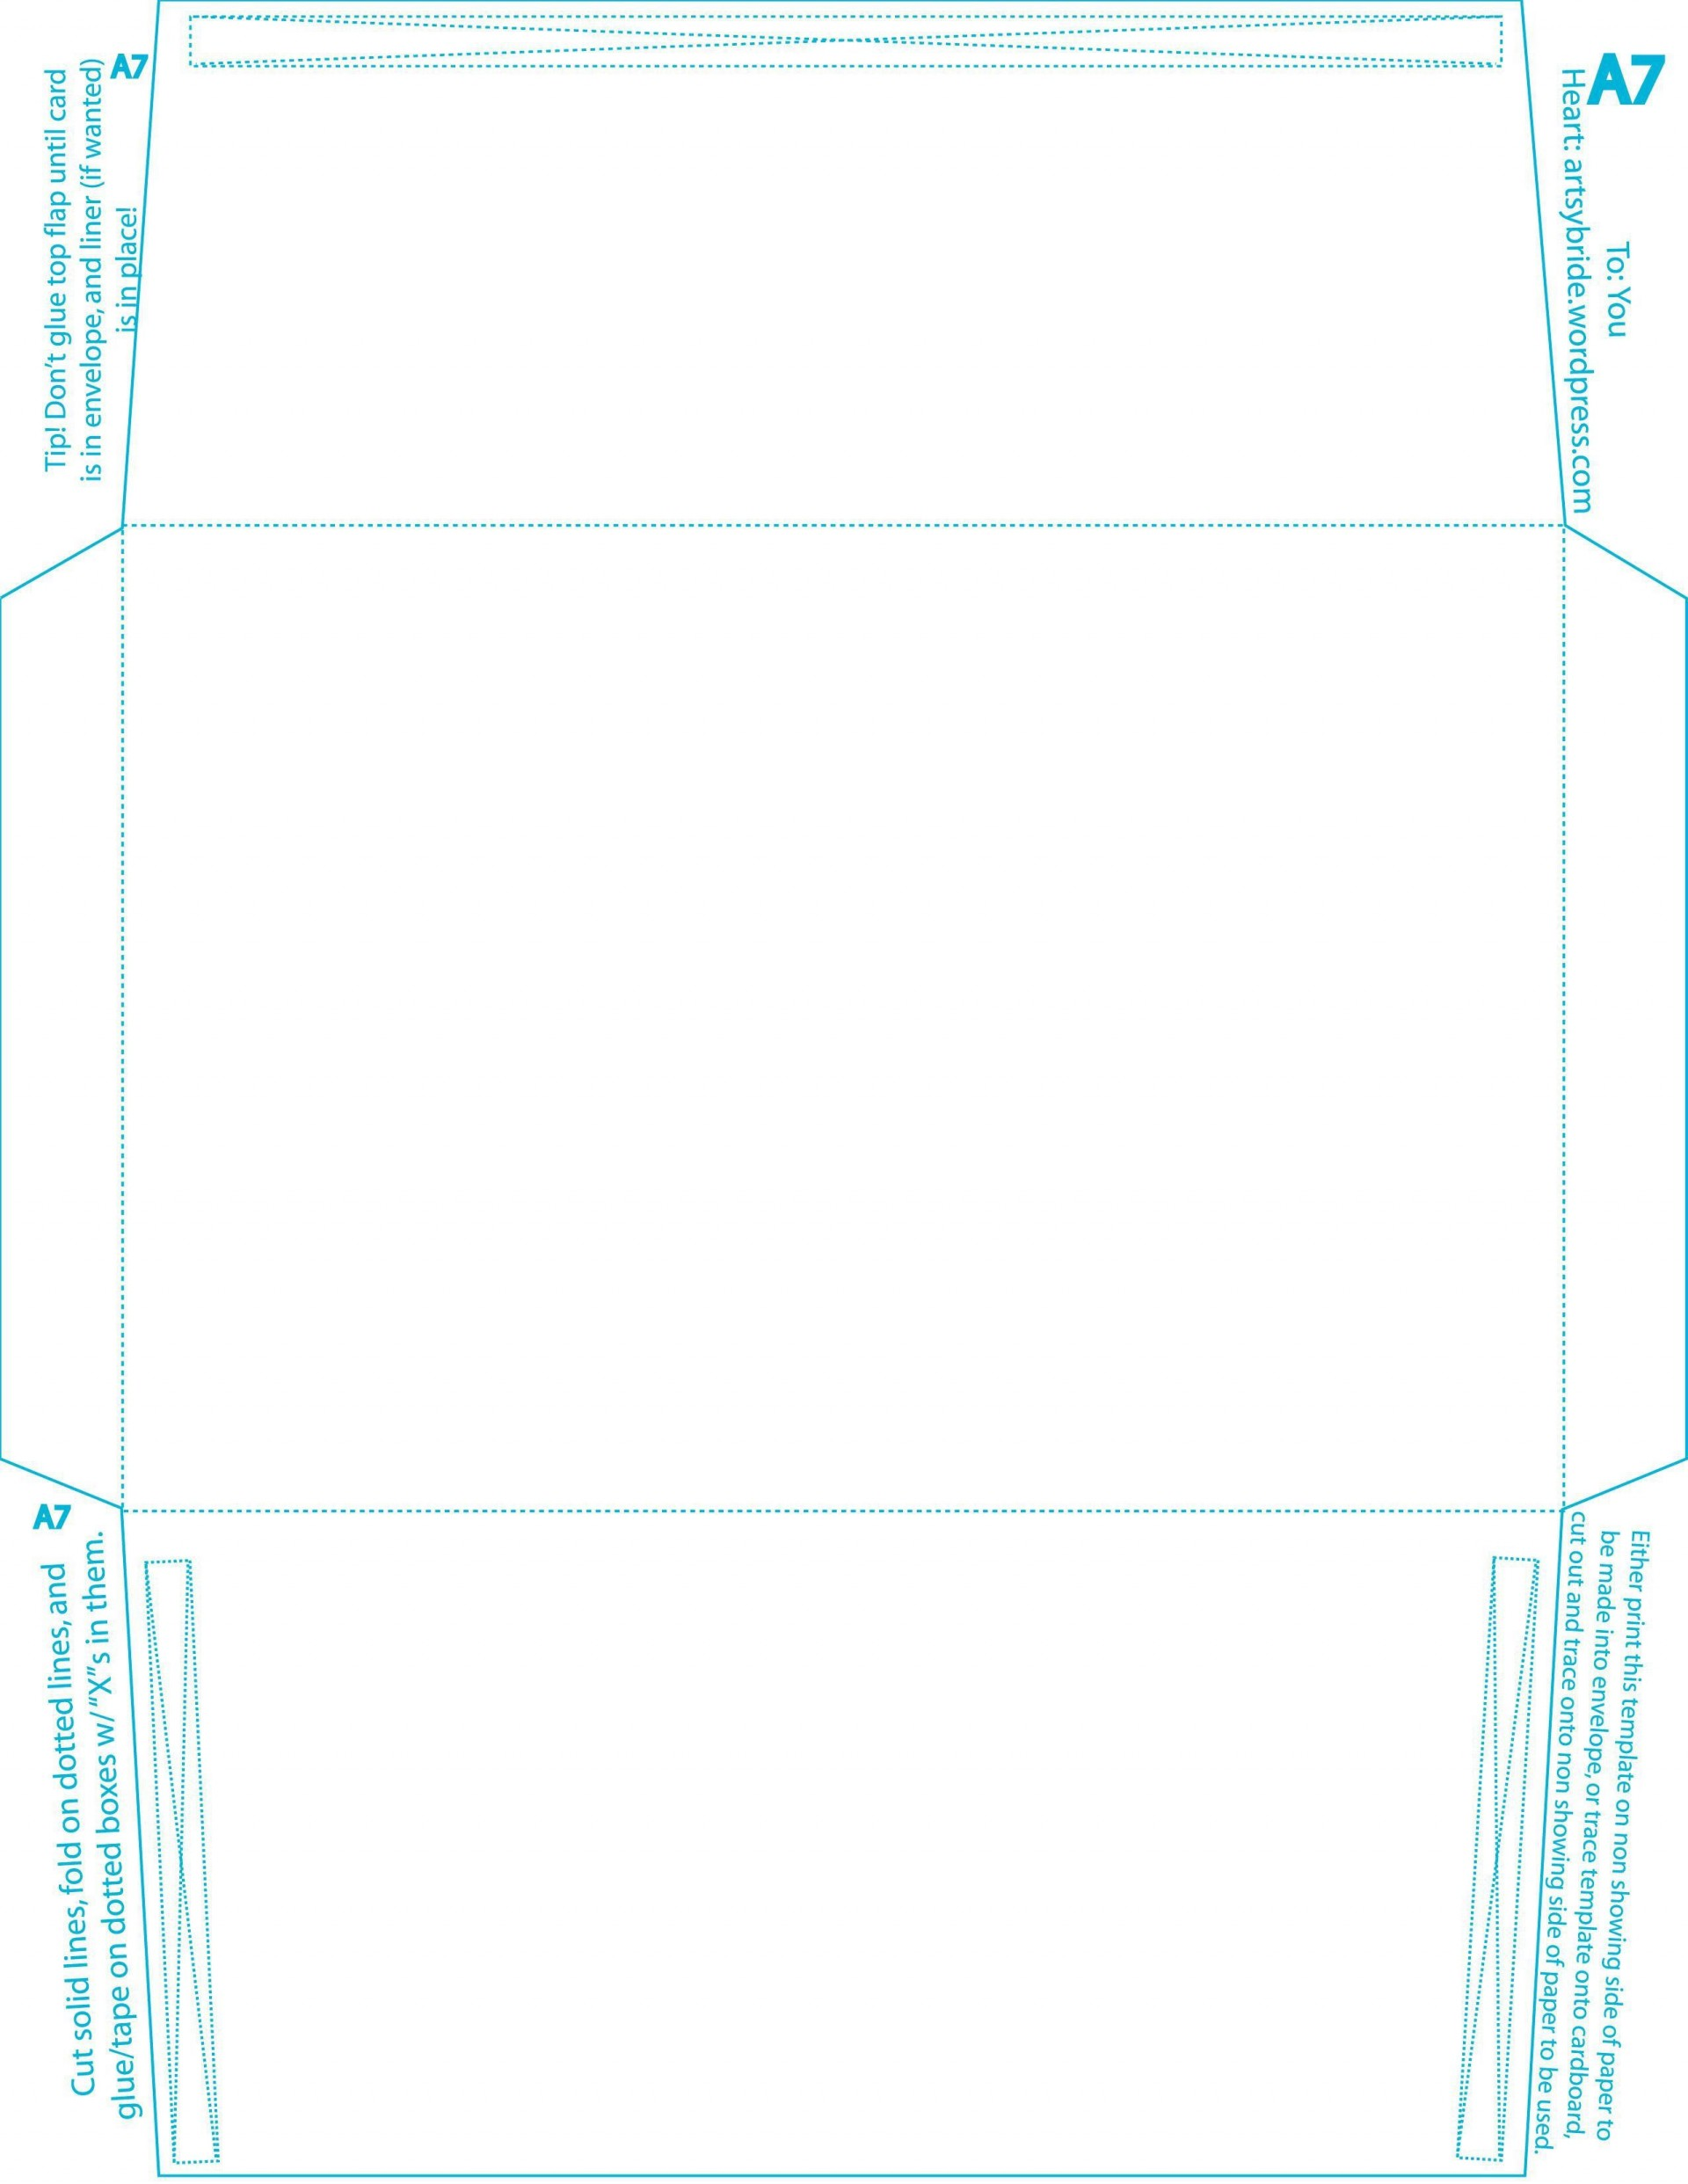 007 Top A7 Envelope Liner Template Free High Resolution 1920